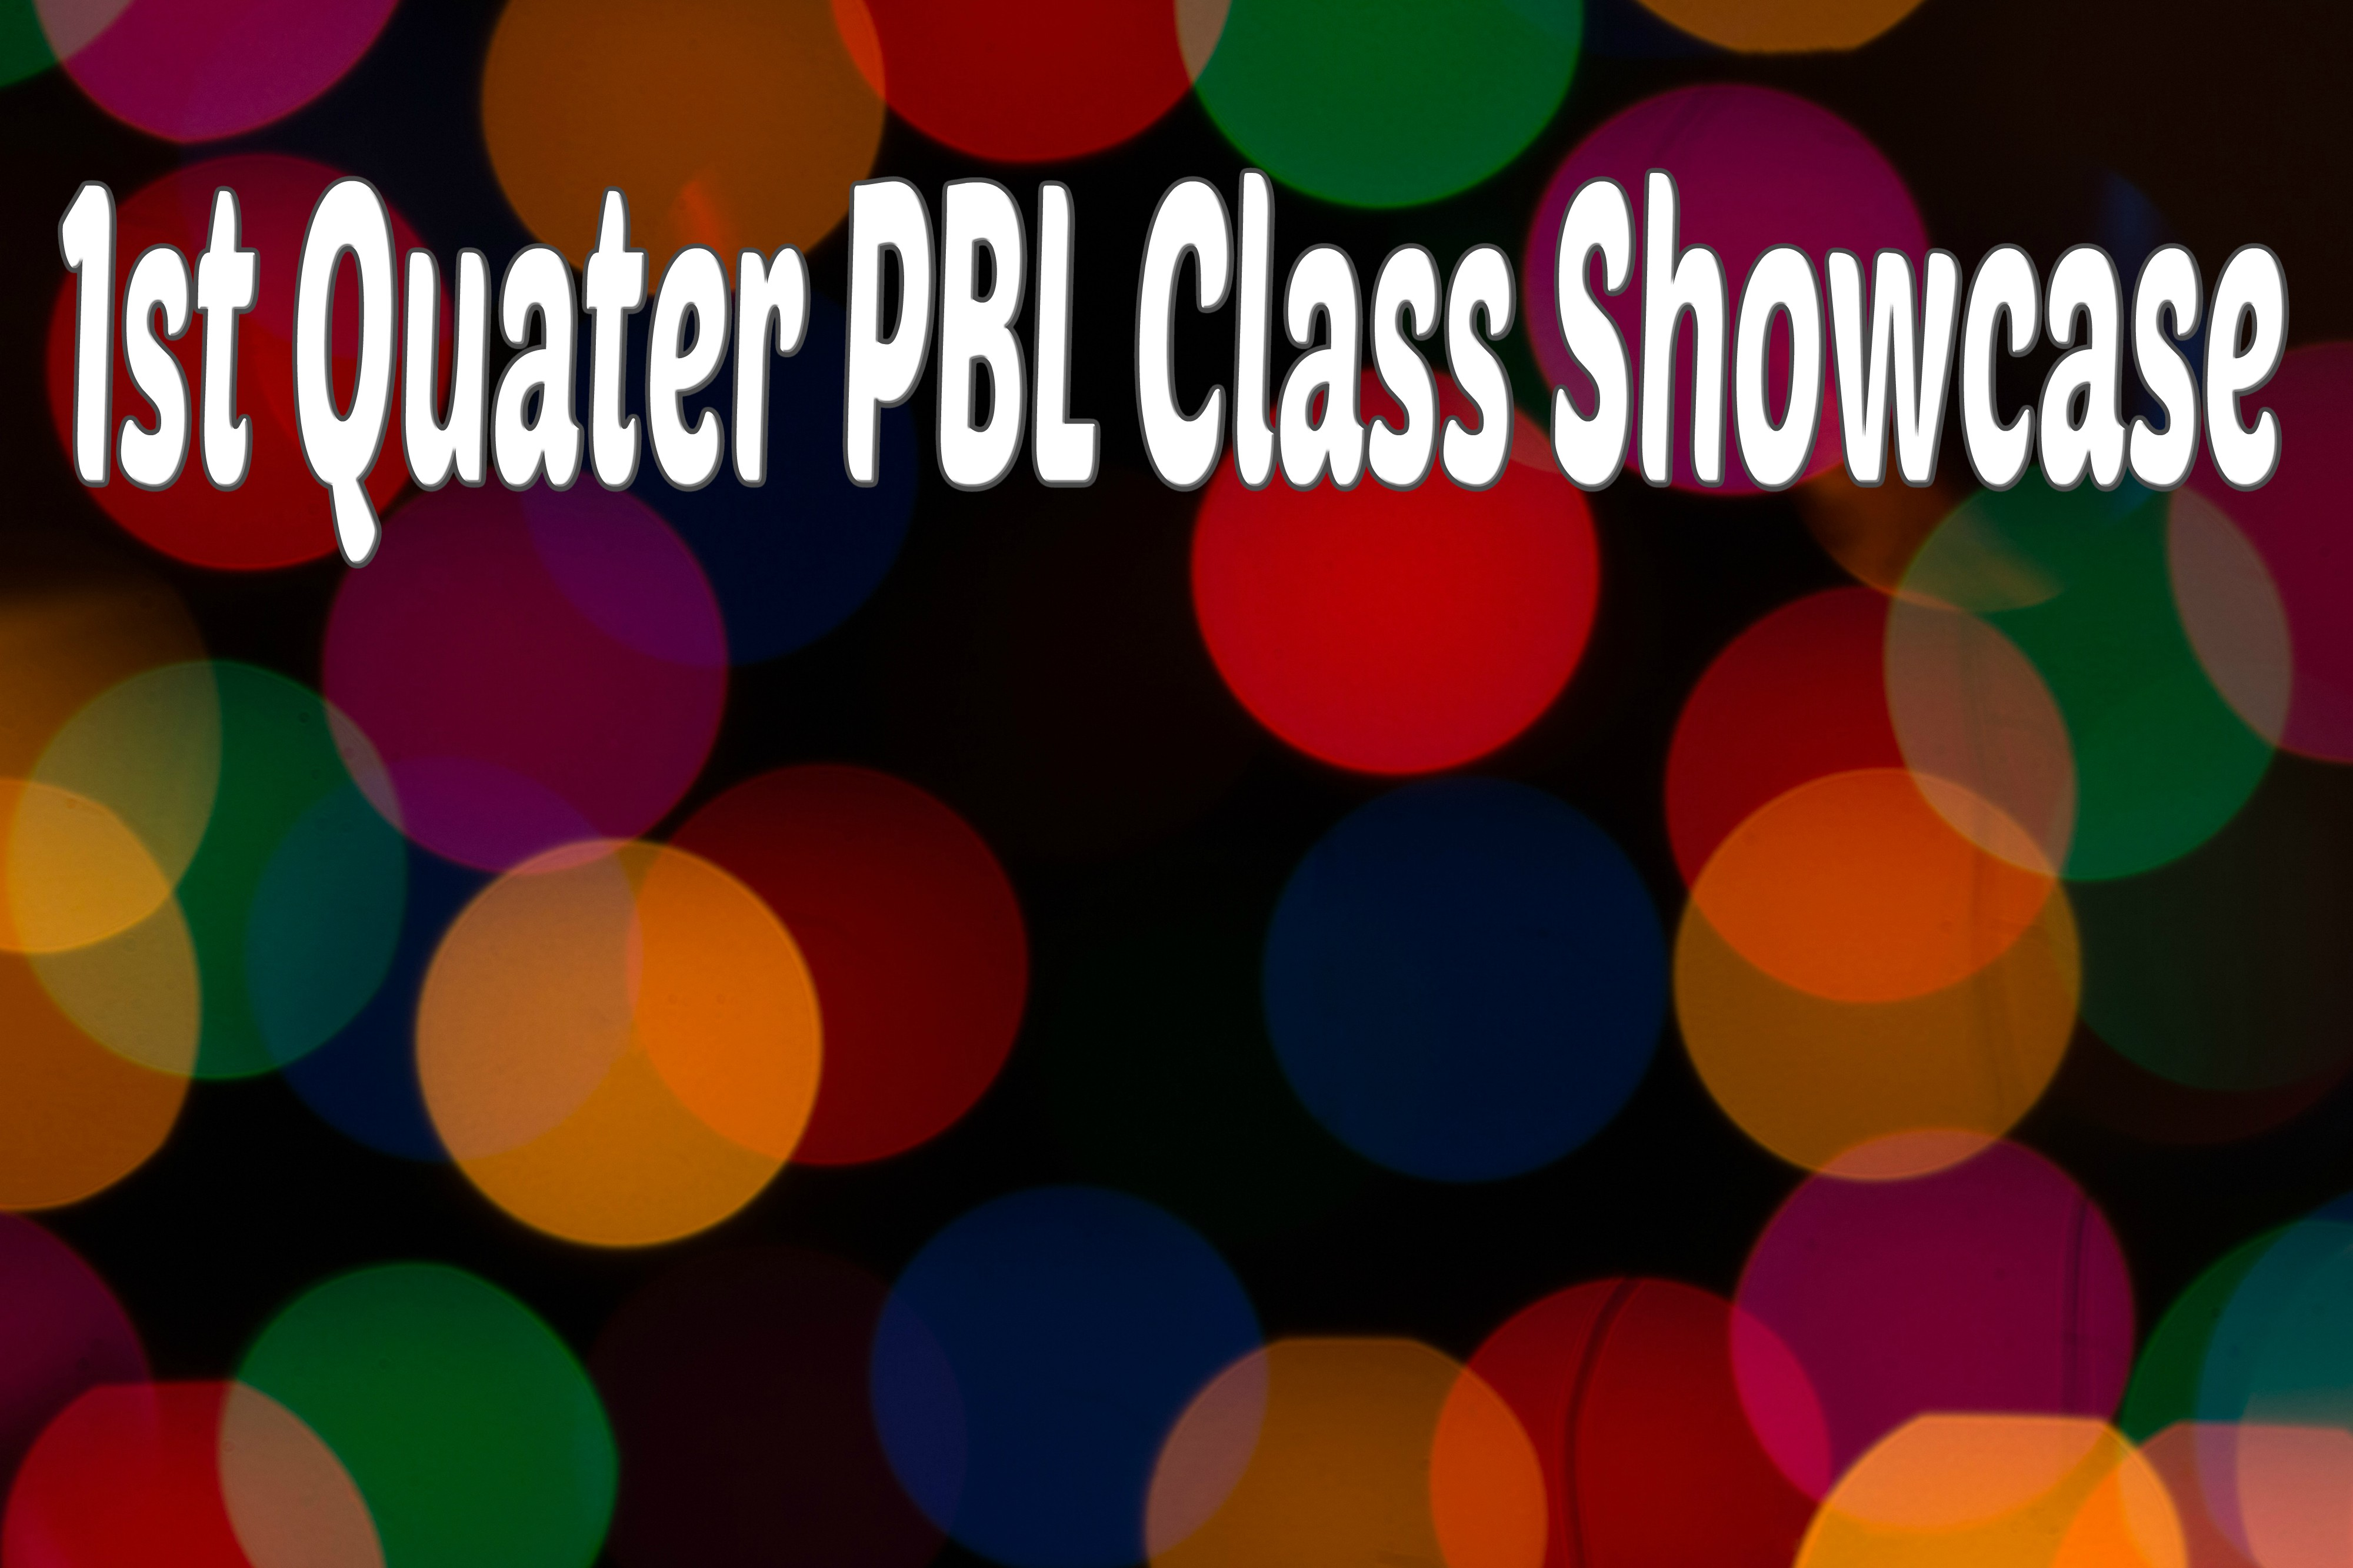 PBL = Project Based Learning – Wednesday, October 30th